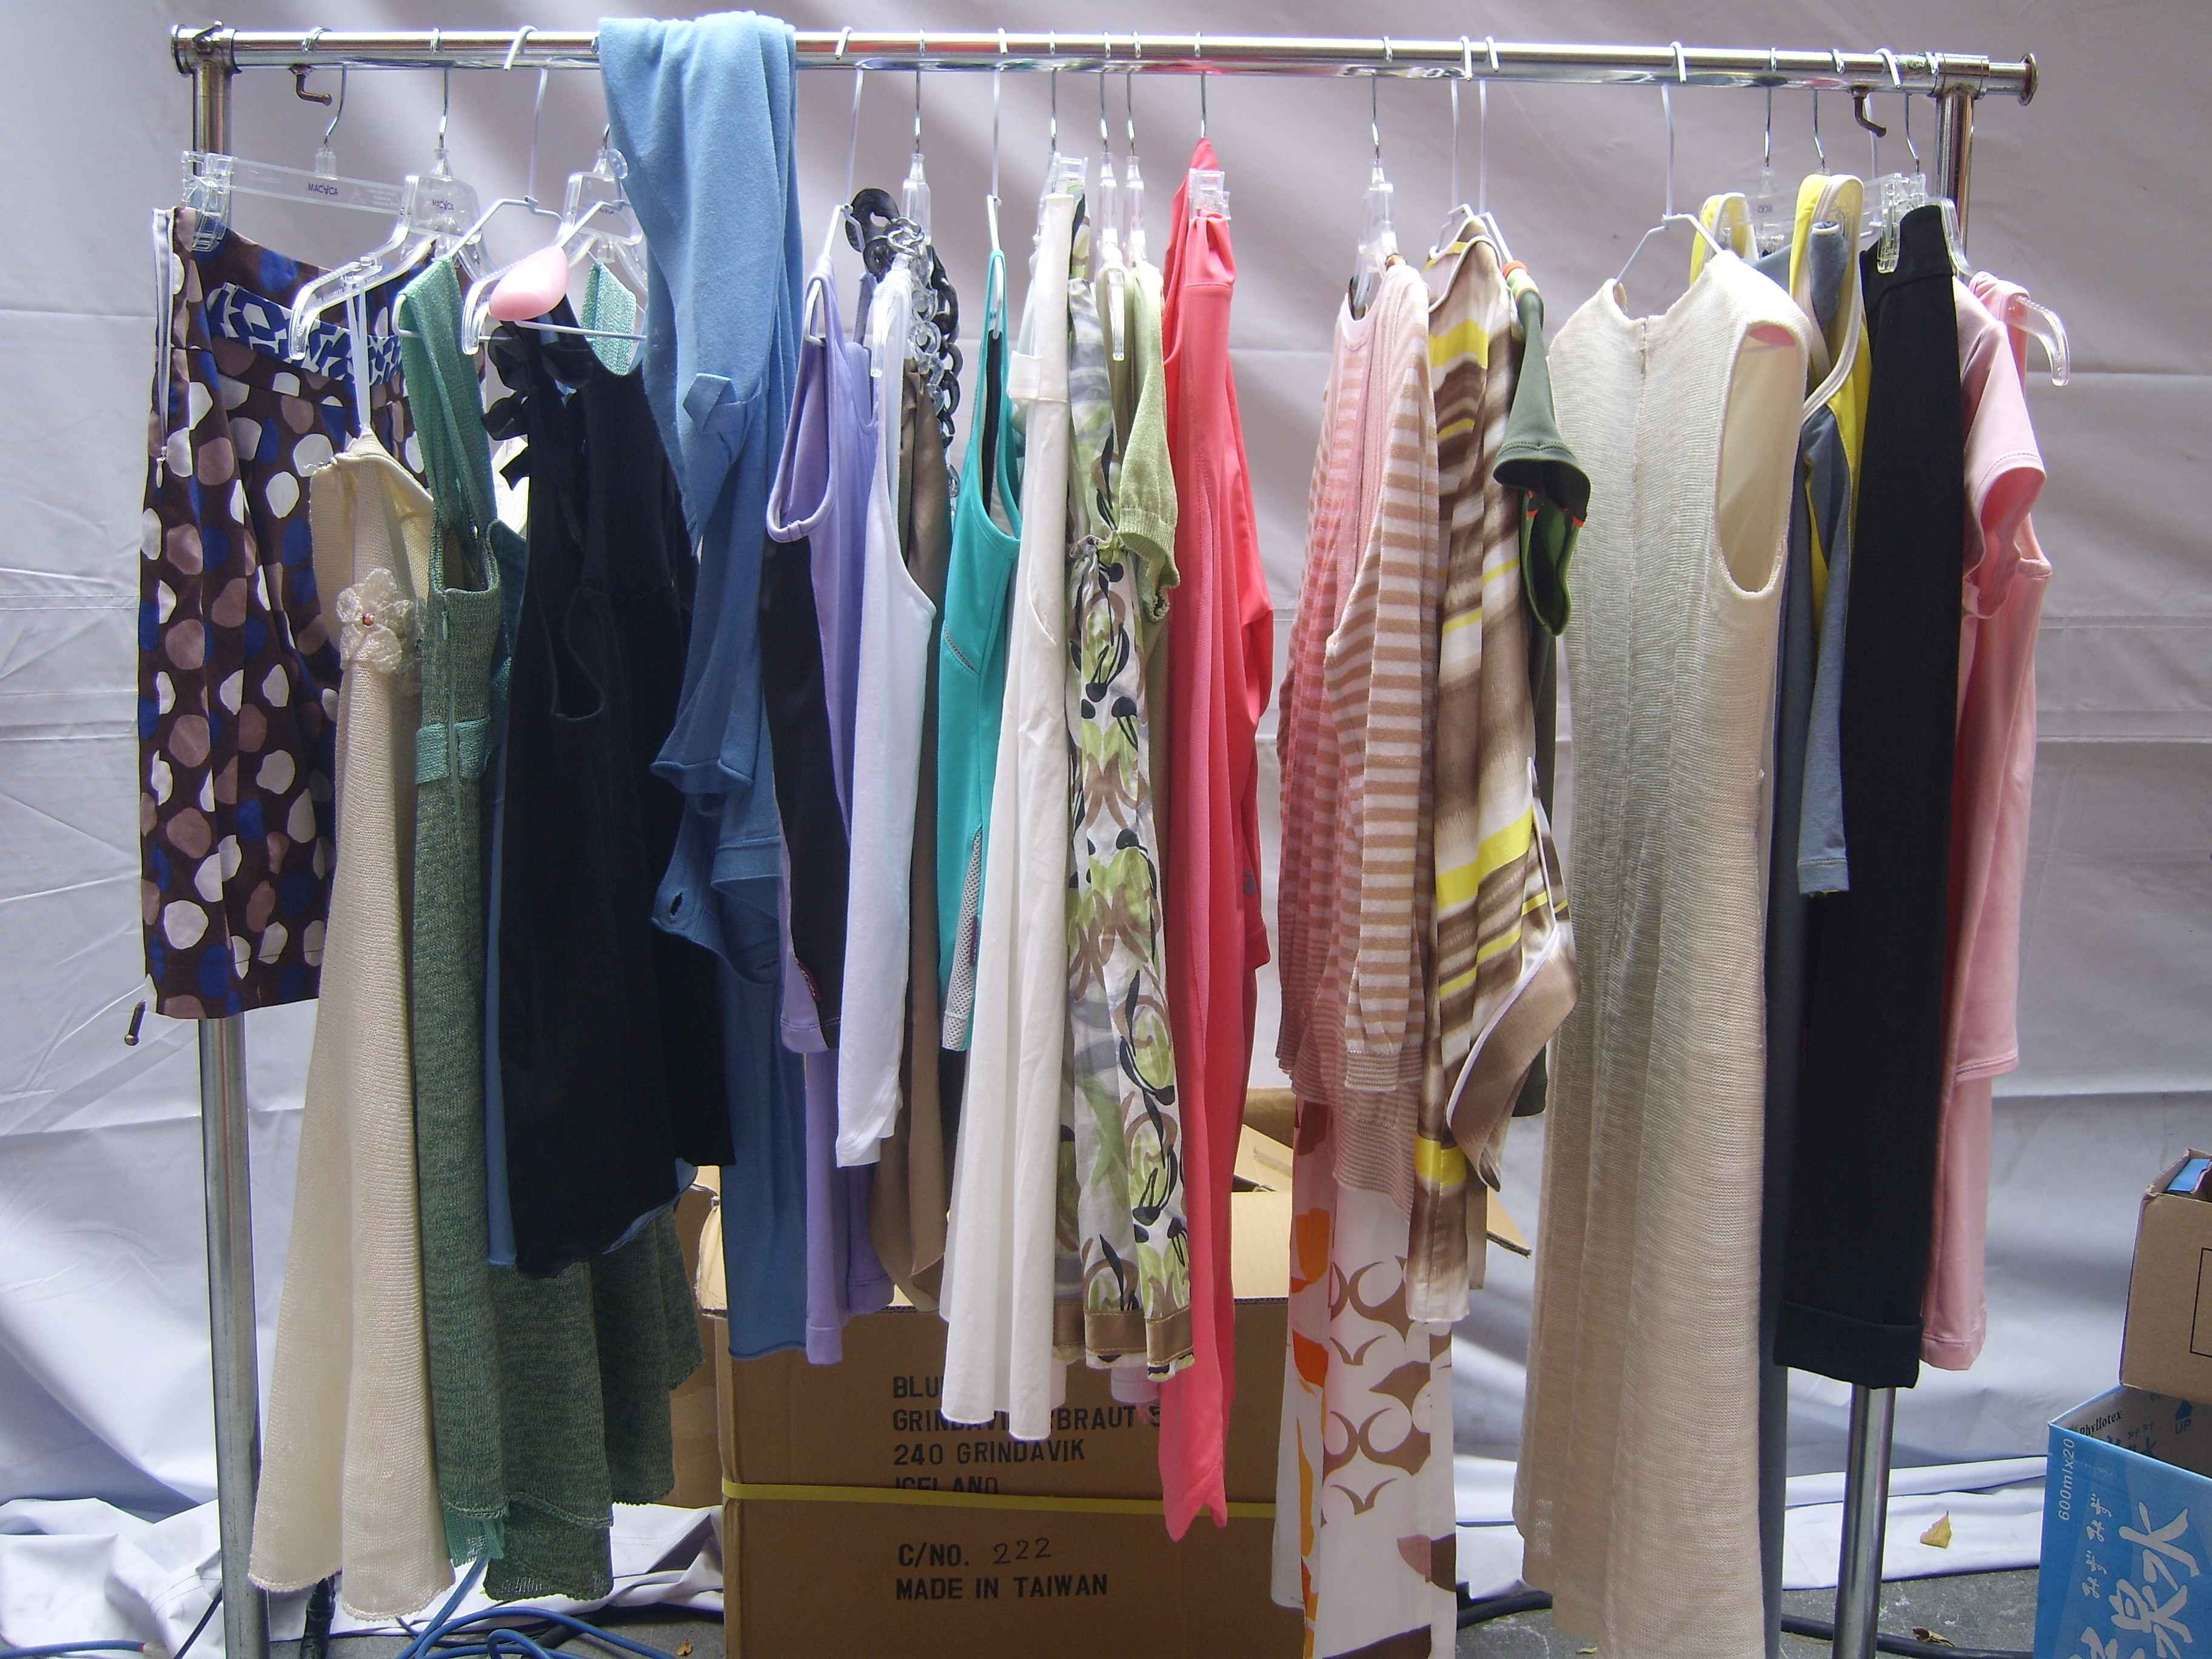 Aparador Thunder Fight ~ File 2008 Taipei In Style Outdoor Fashion Show Clothes Racks jpg Wikimedia Commons